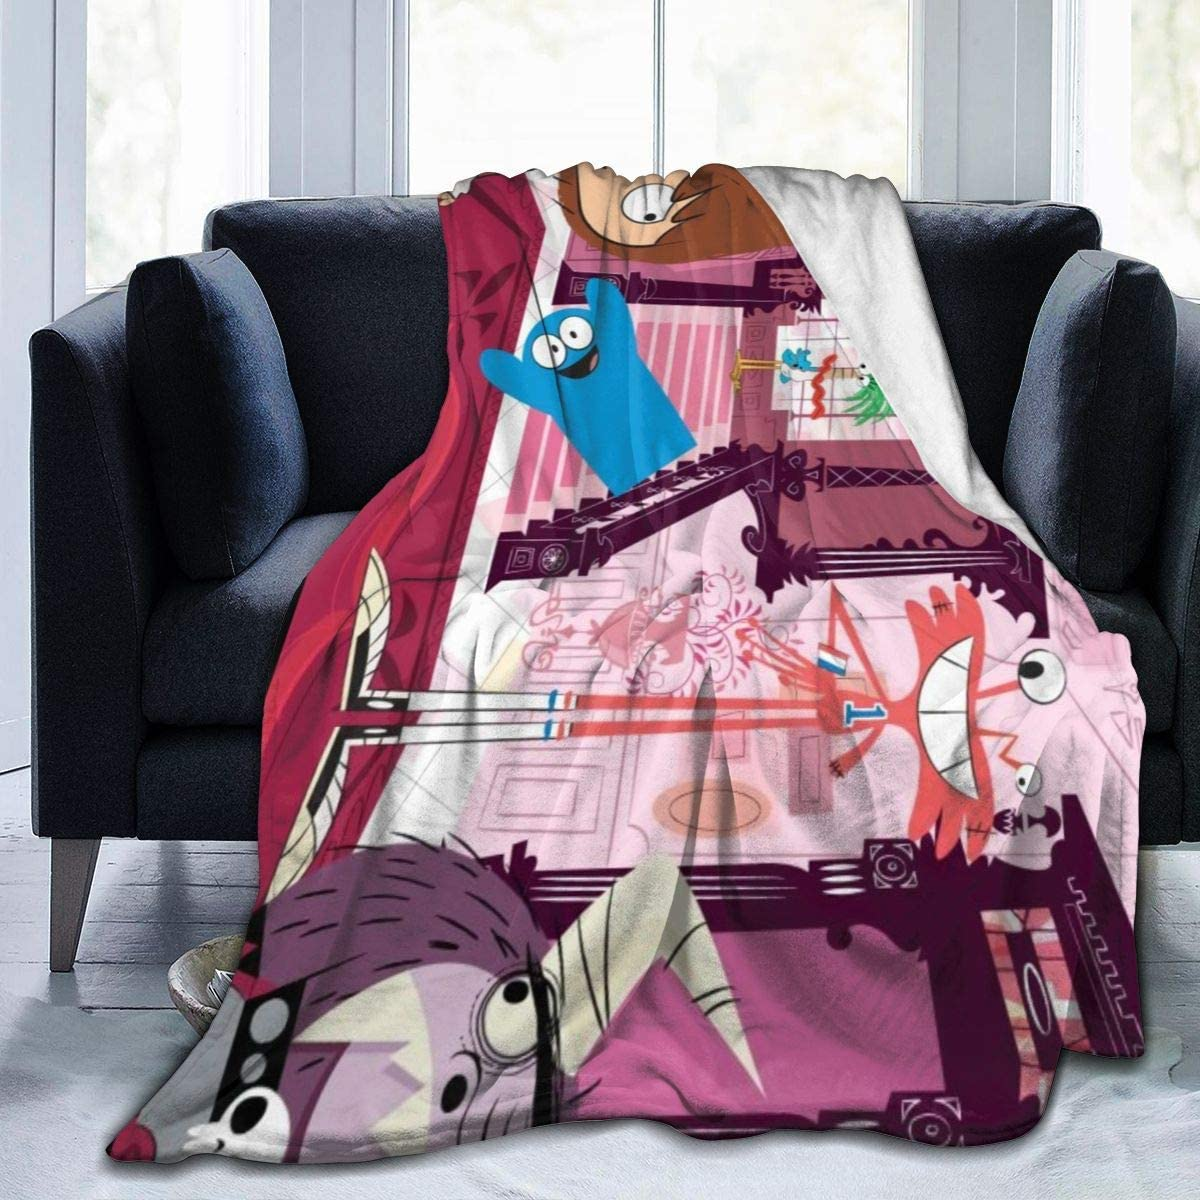 Foster's Home for Imaginary Friends Super Soft Sheep Blanket, Suitable for Adults Or Children's Sofa Or Bed